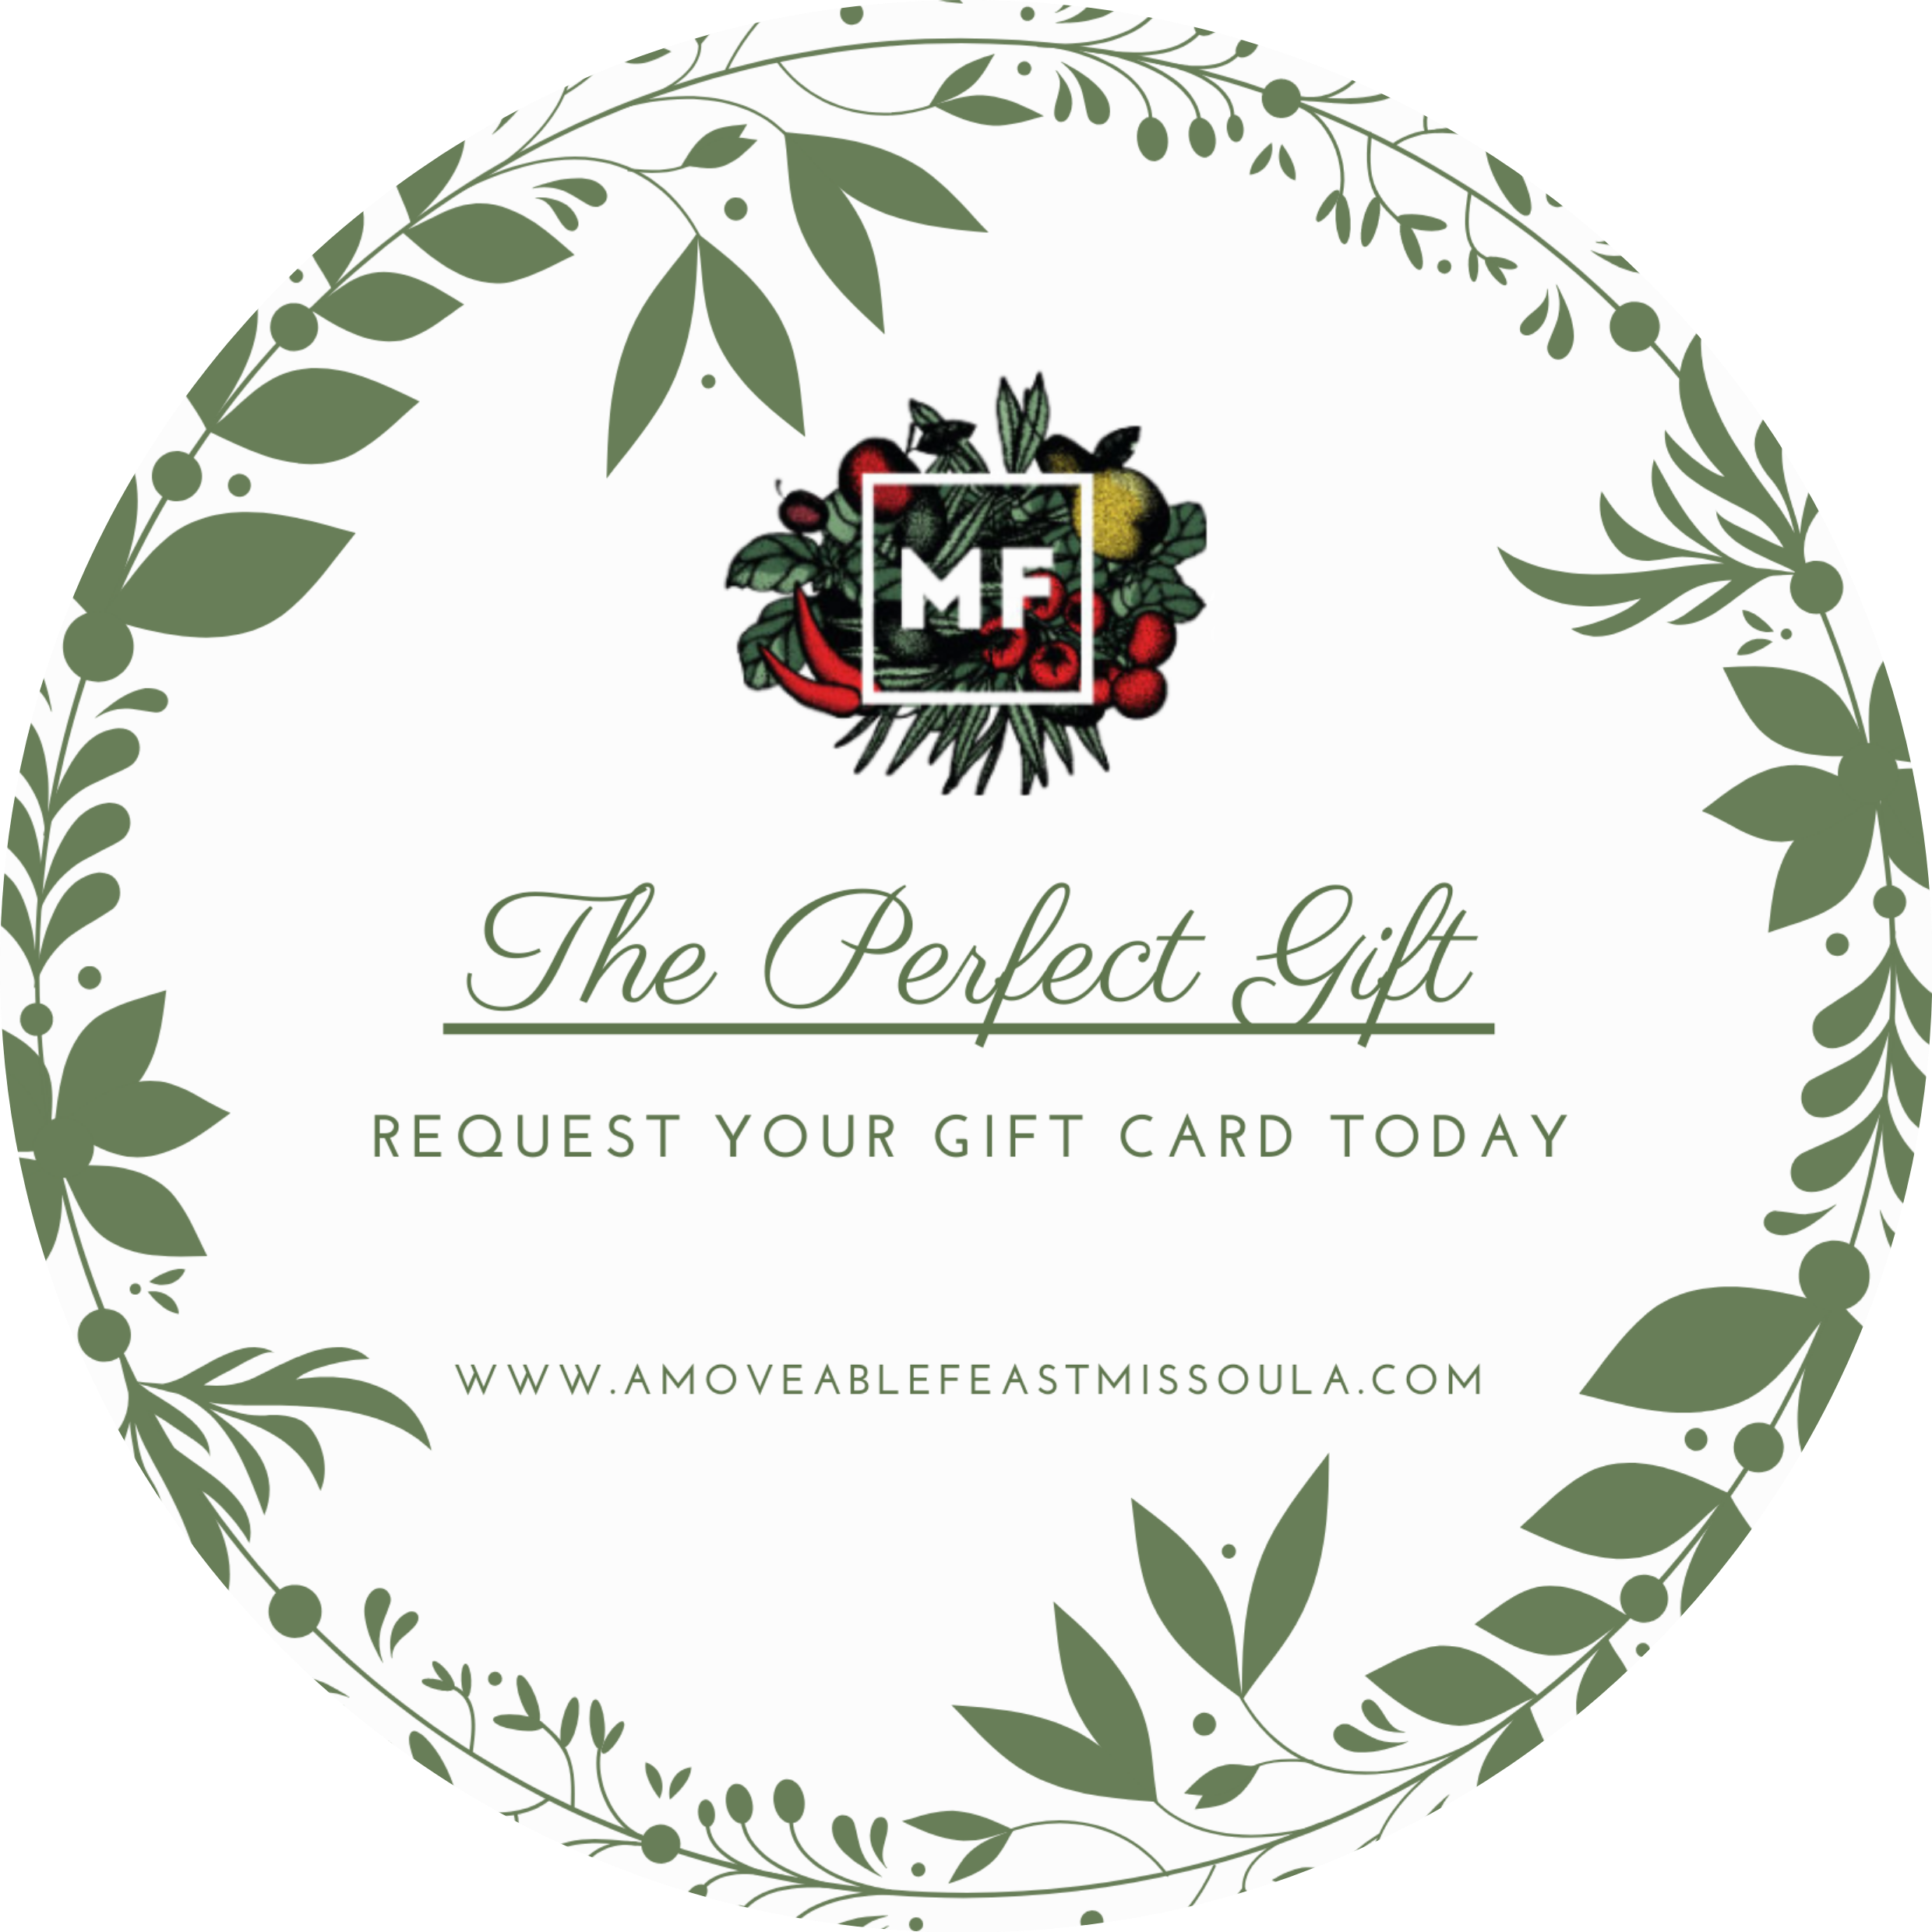 Catering Gift Cards, A Moveable Feast Gift Card, Cooking Class Gift Cards, Cooking Classes, Group Classes, Corporate Classes